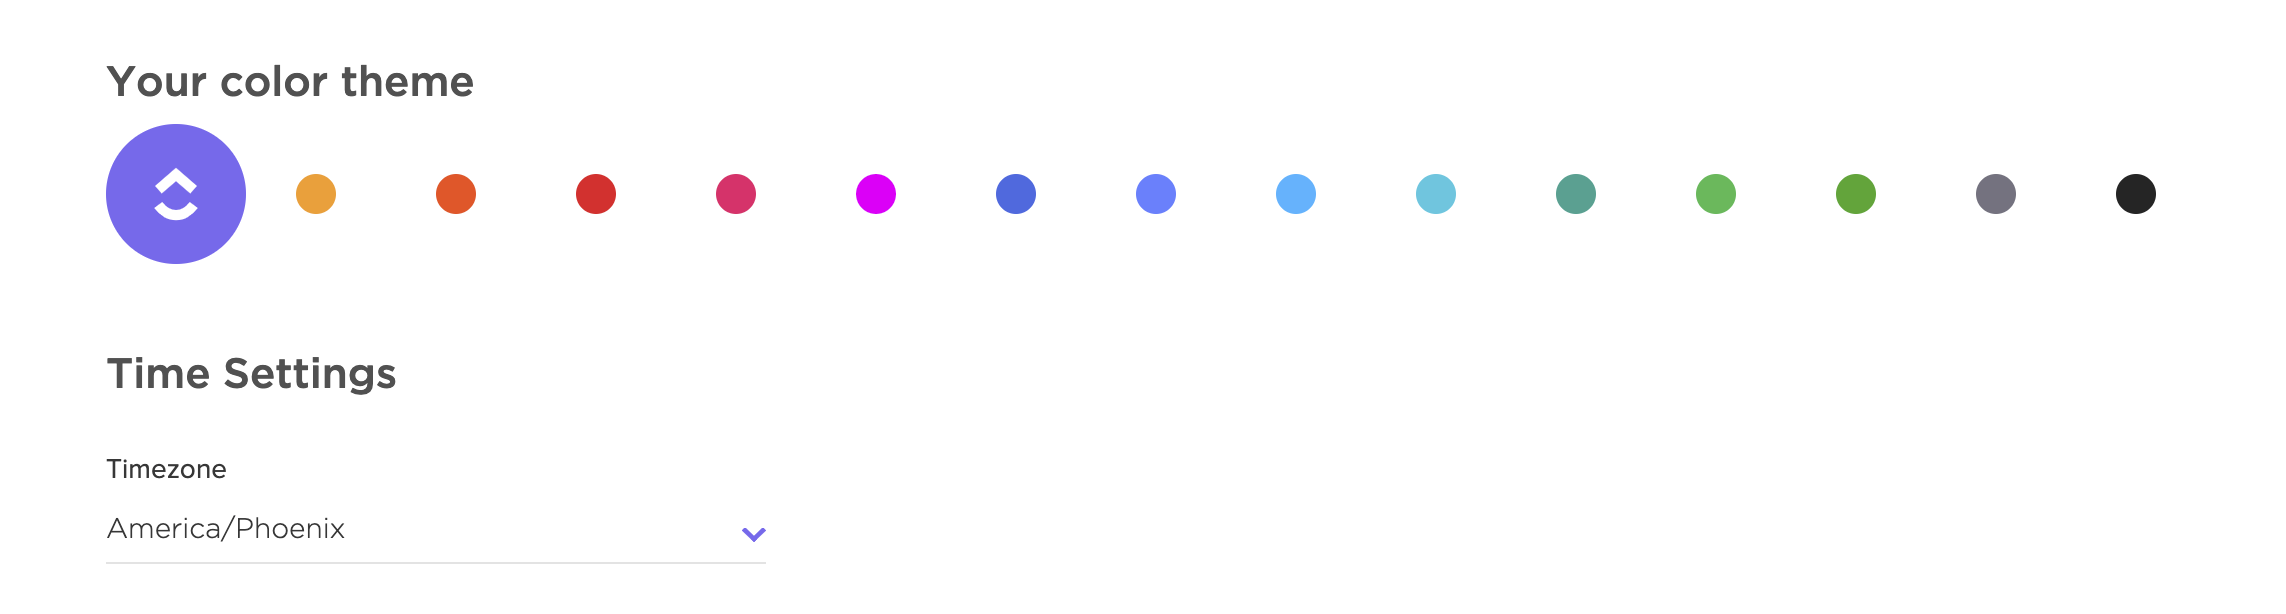 Image showing the color options for your account's color theme